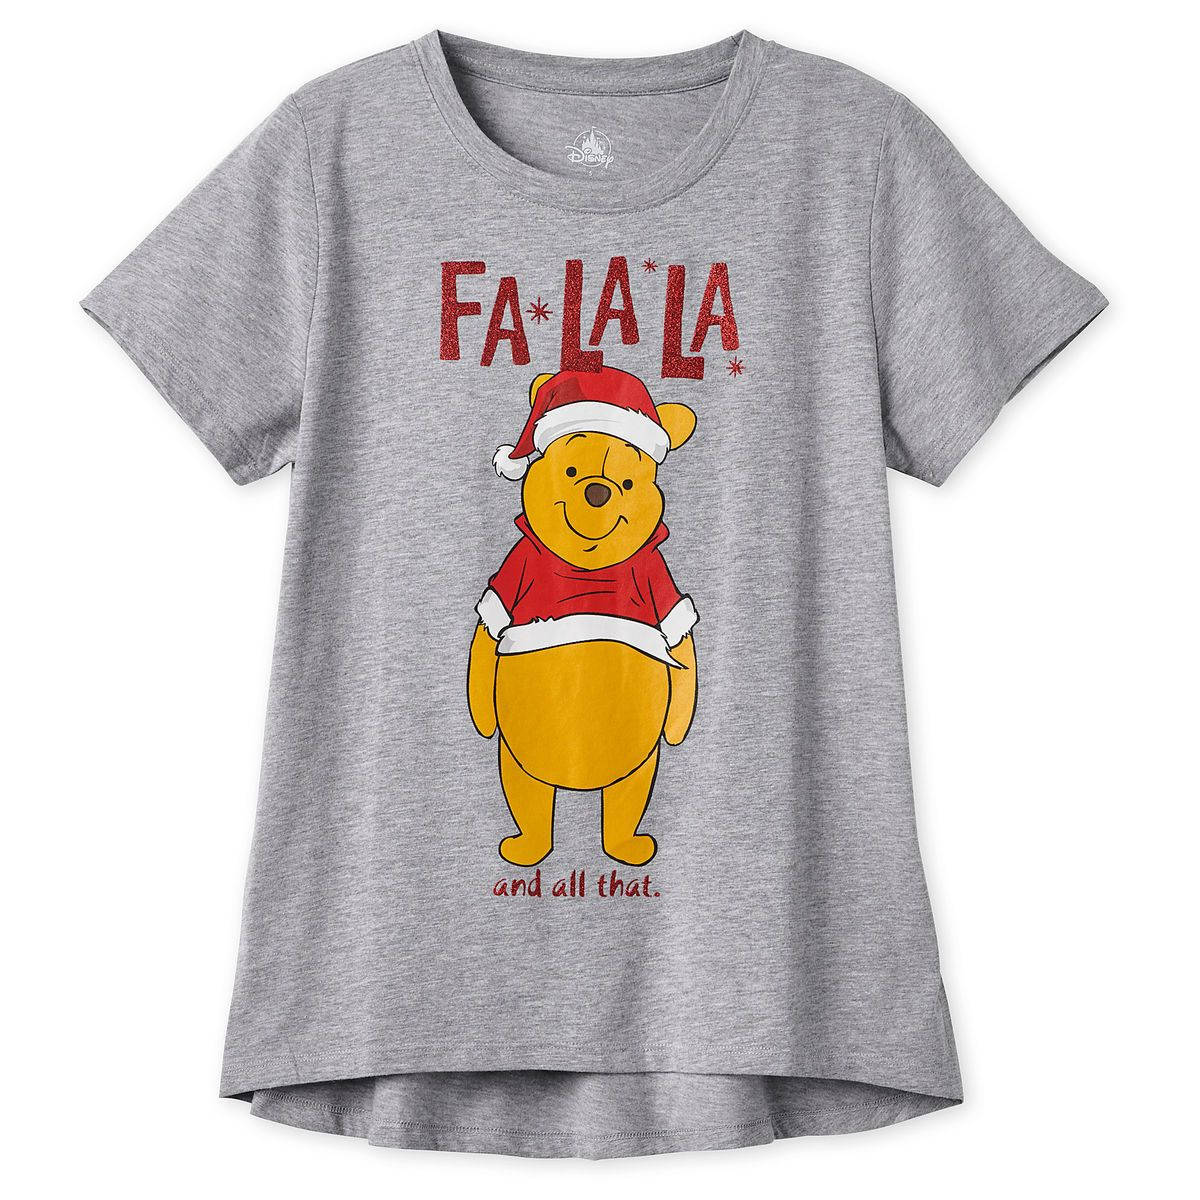 5424501456eab Product Image of Winnie the Pooh Holiday T-Shirt for Women   1